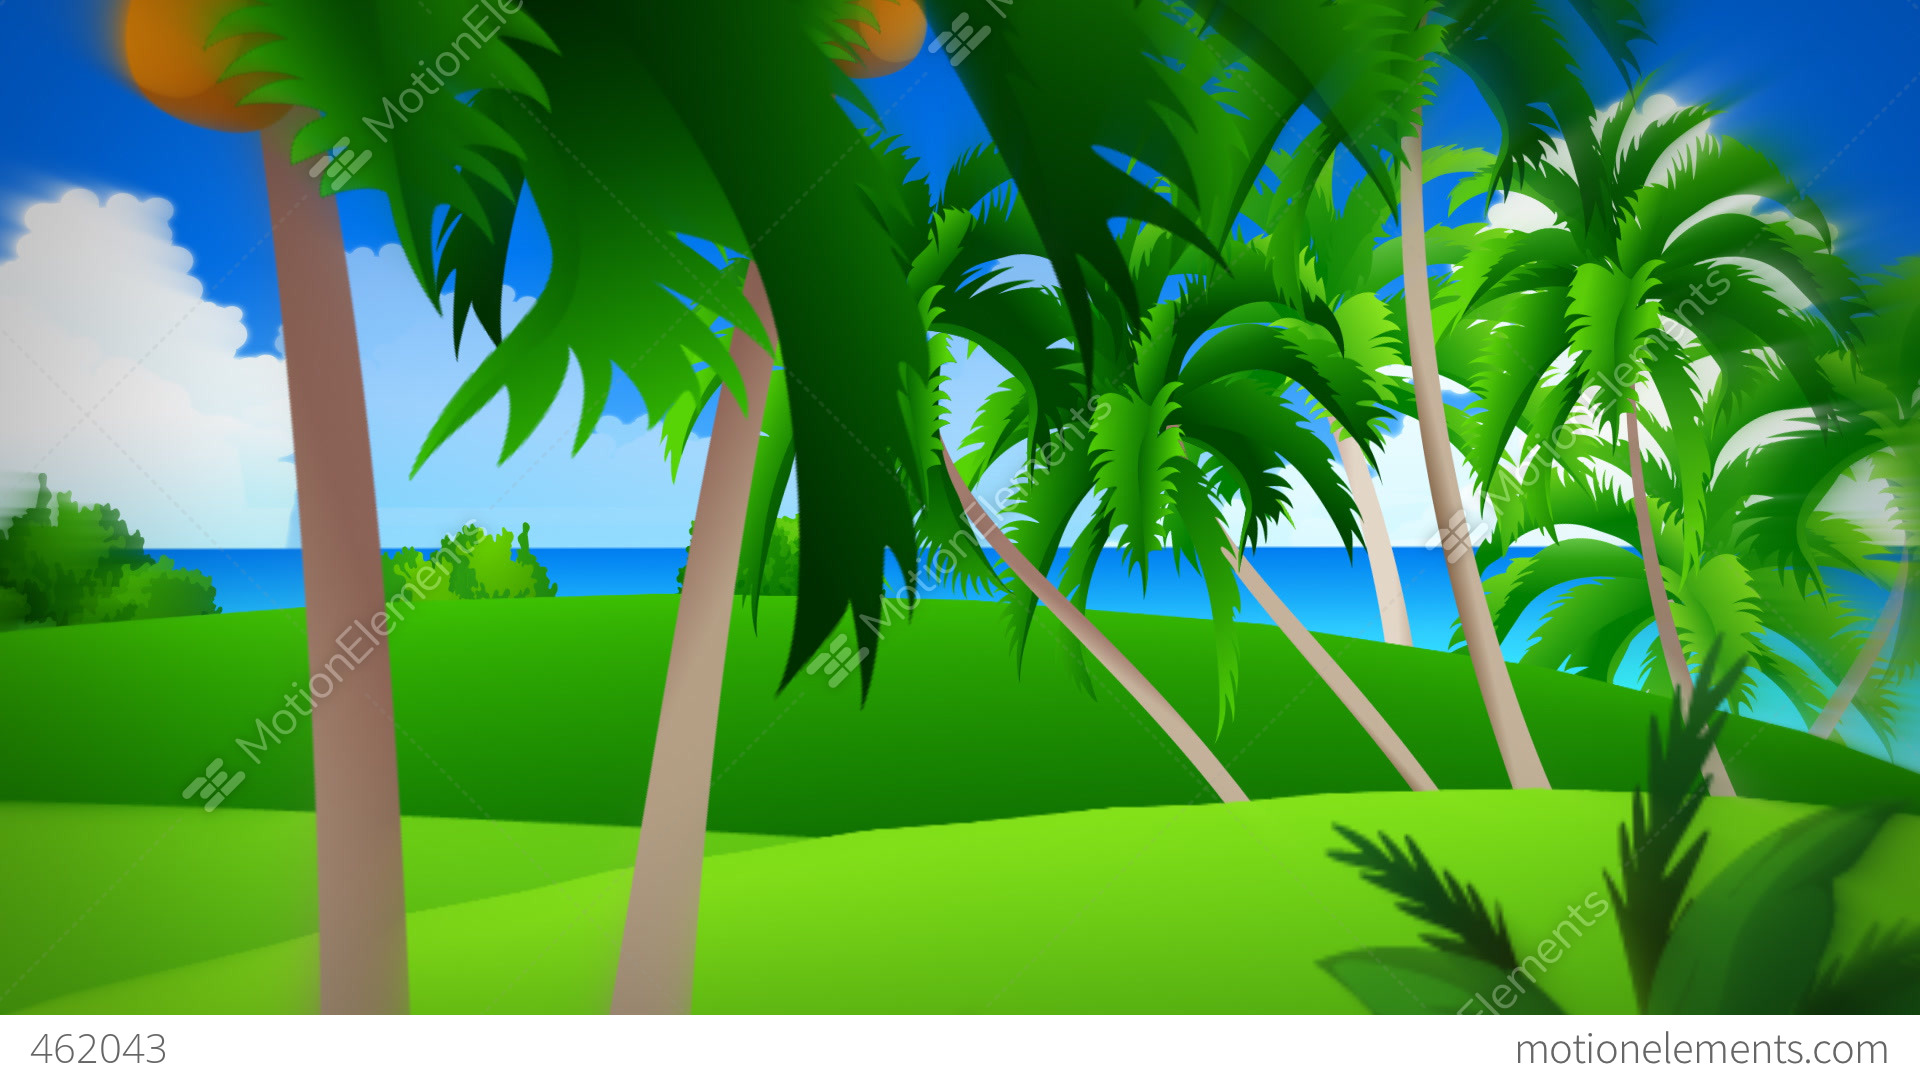 animated background for television presentations stock